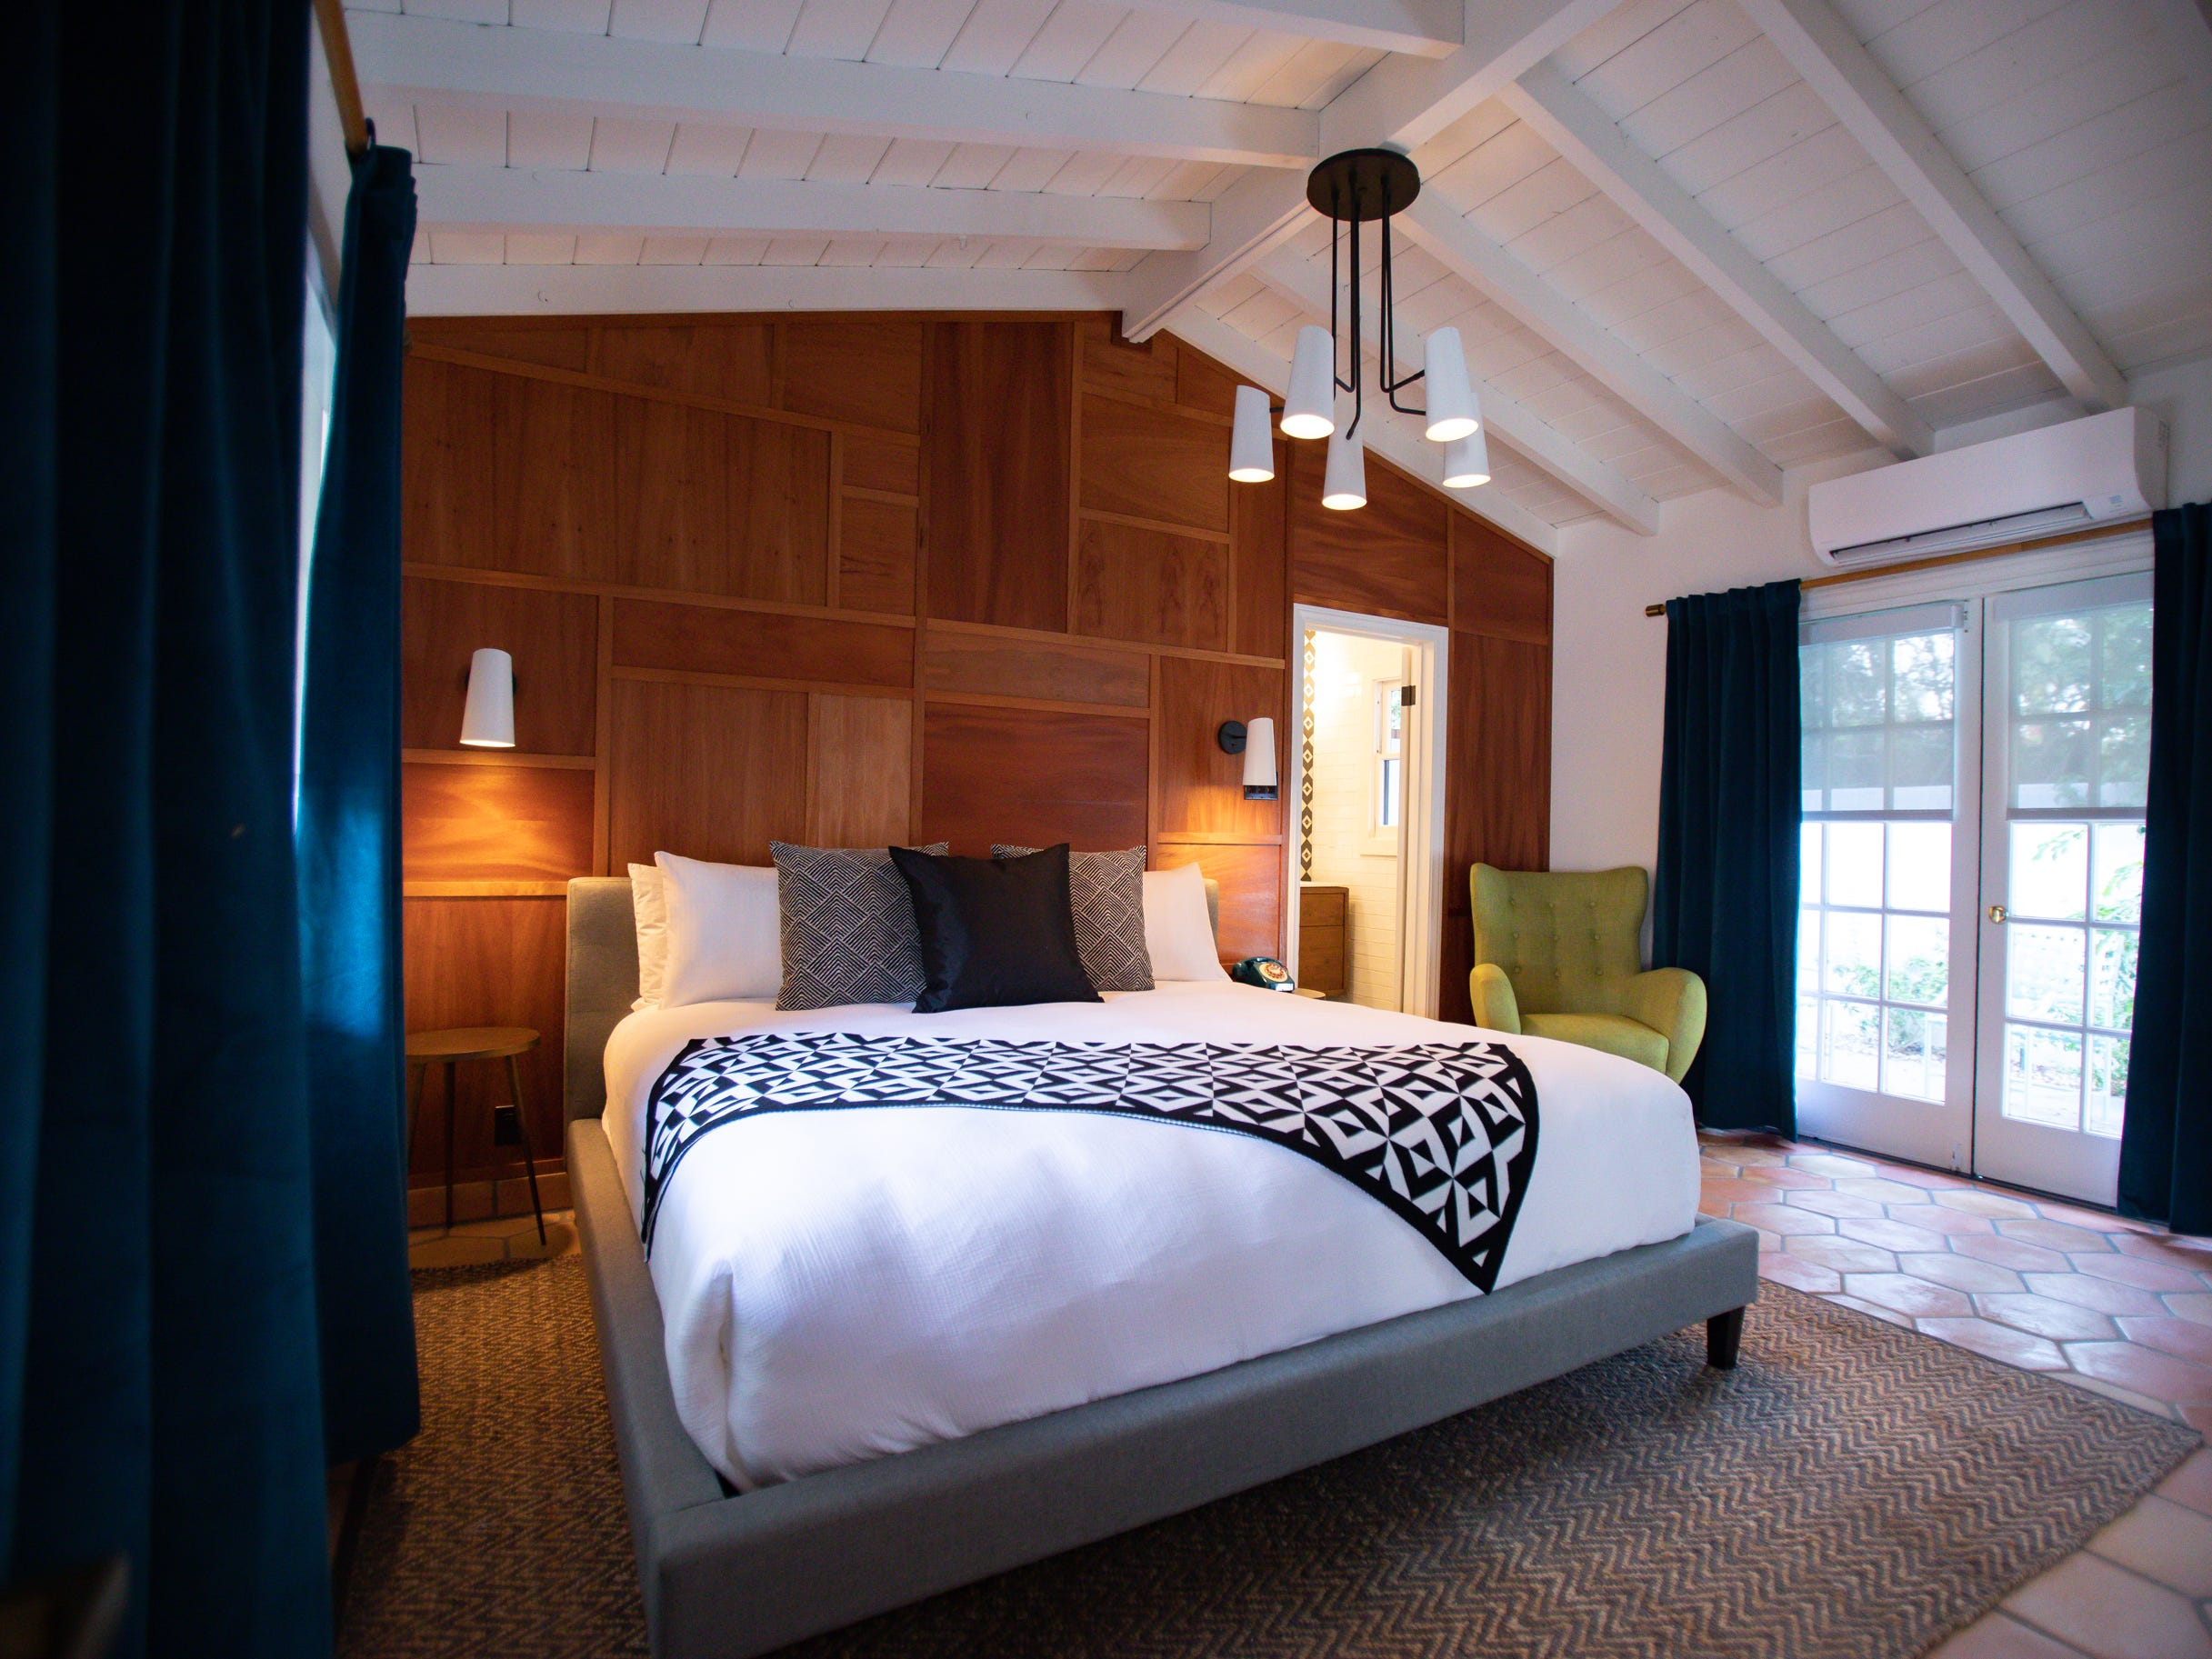 Each of the 38 rooms at Villa Royale Palm Springs will have its own look and feel.